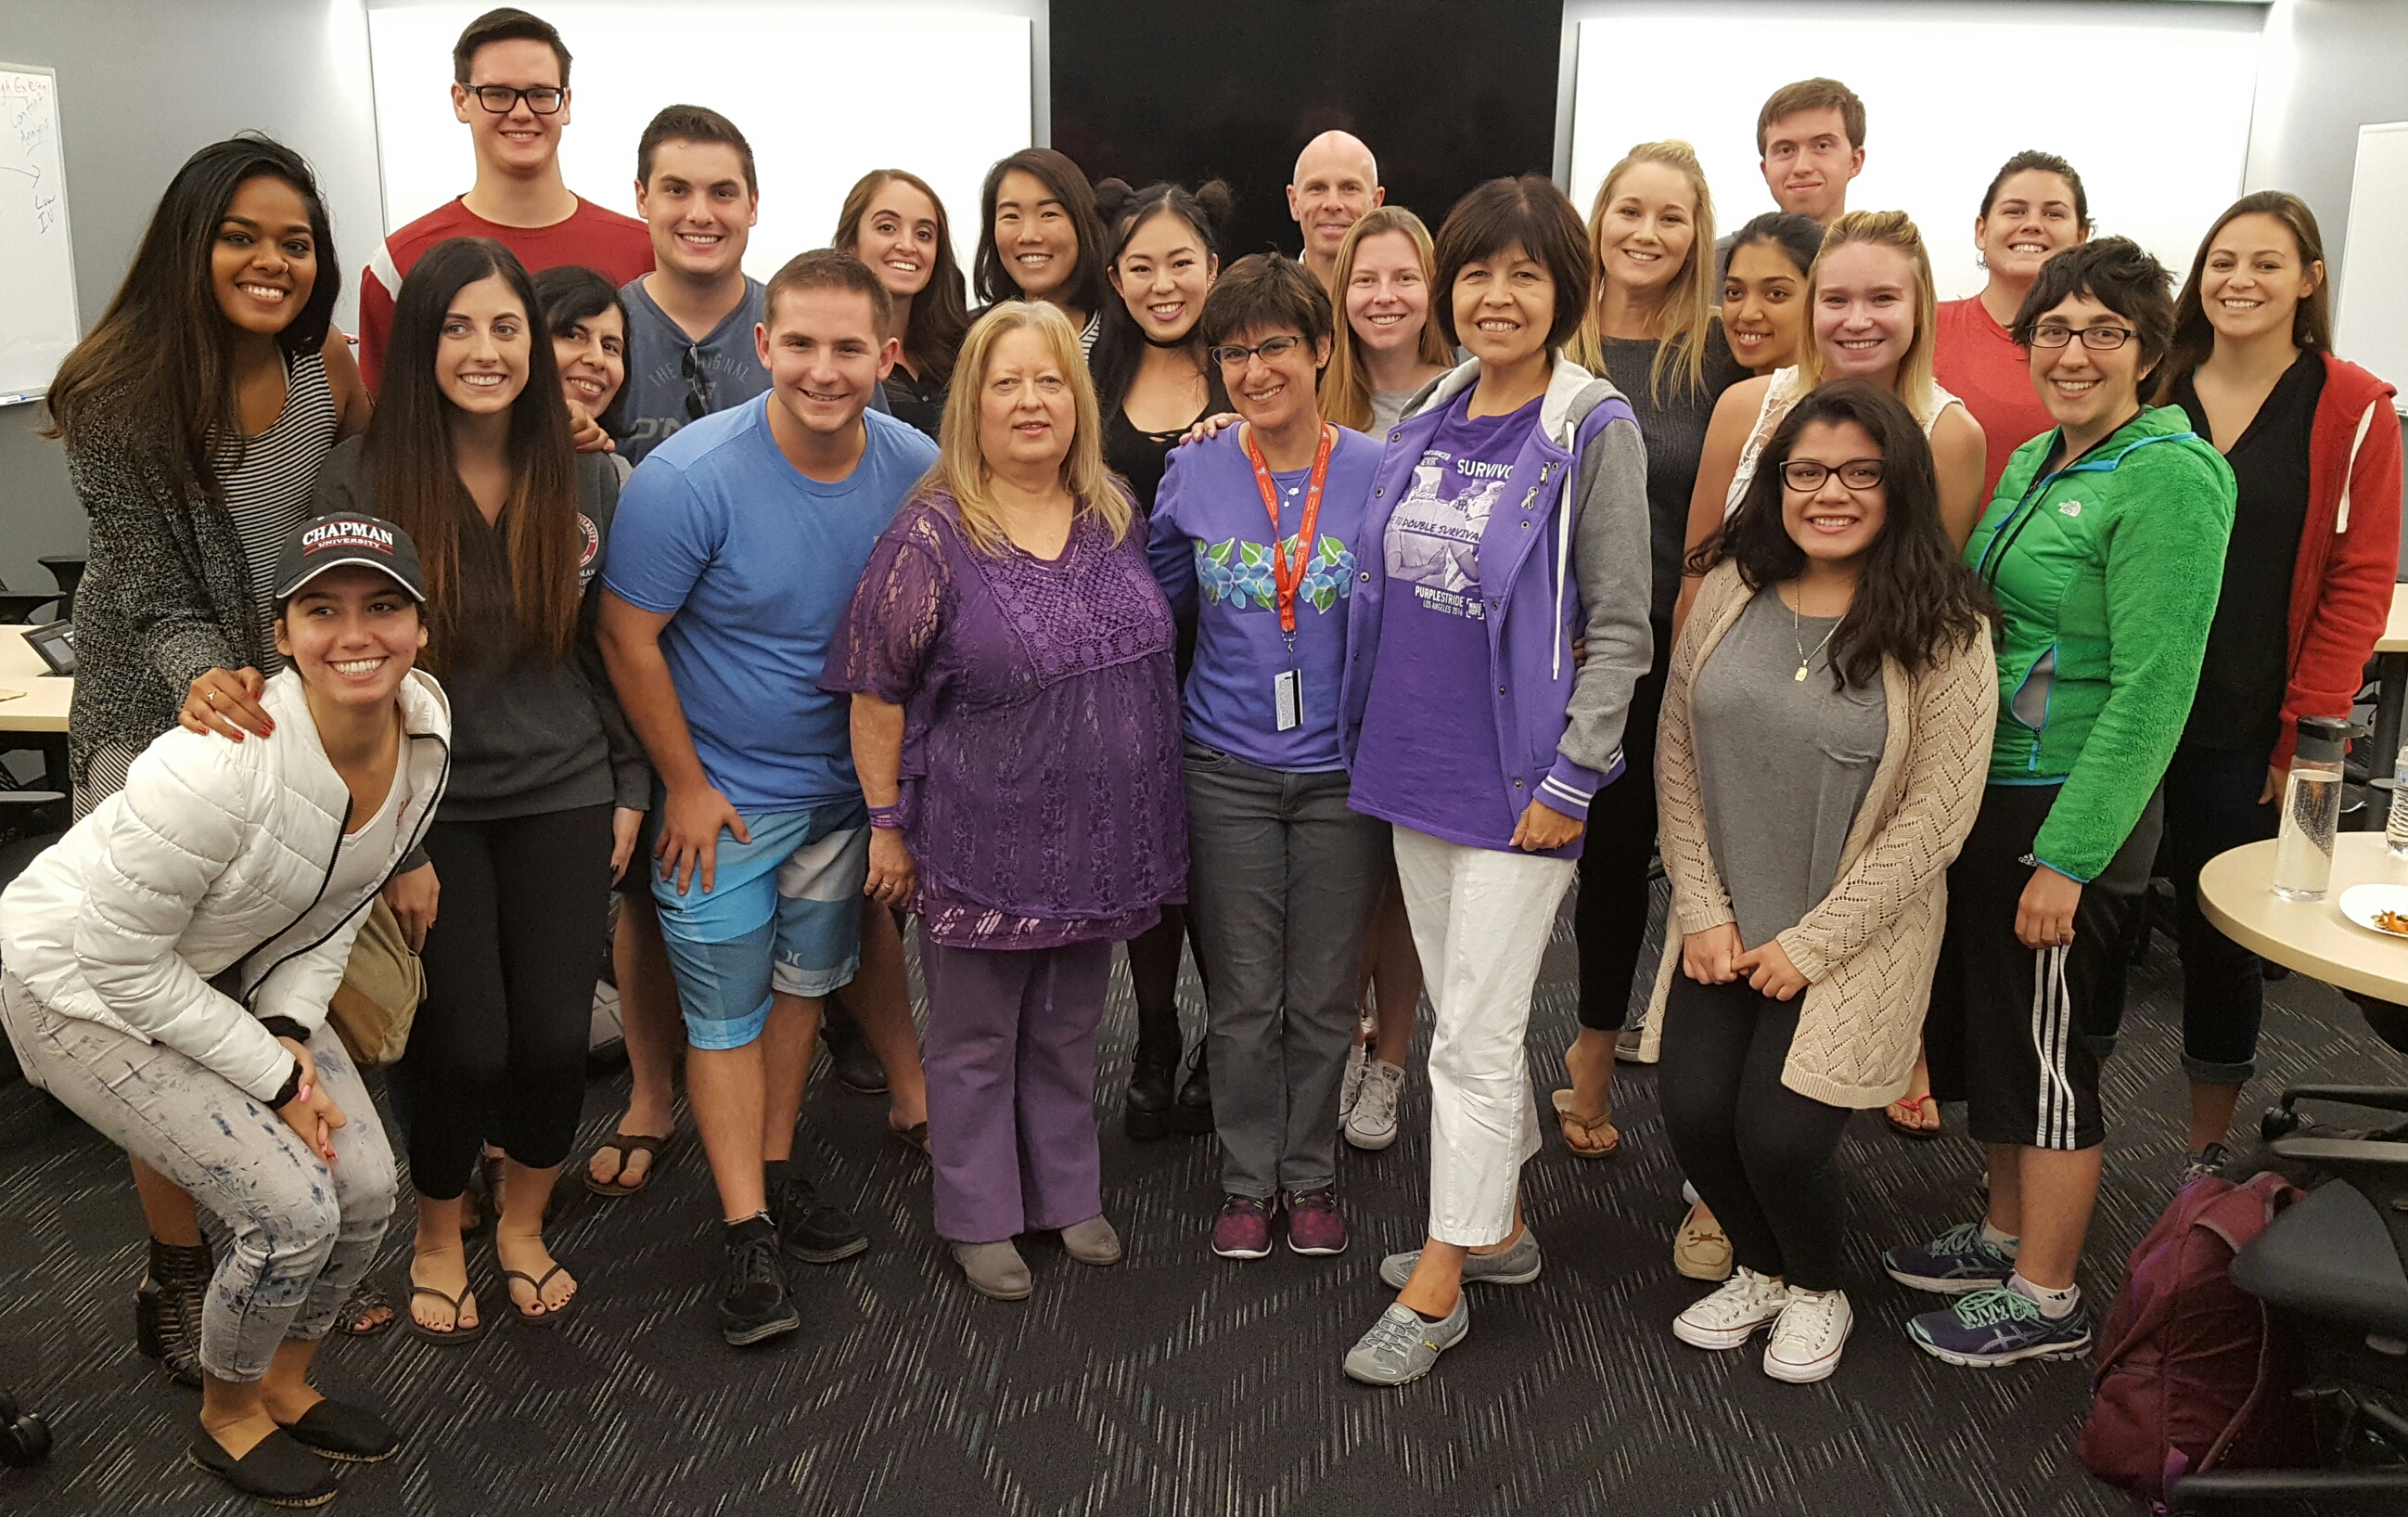 Pancreatic cancer survivors Roberta Luna (front left in purple) and Lupe Romero (front-right in purple) stand with Prof. Melissa Rowland-Goldsmith (front-center in purple) and the students in the Cancer Biology class she co-teaches with Prof. Marco Bisoffi (back center).